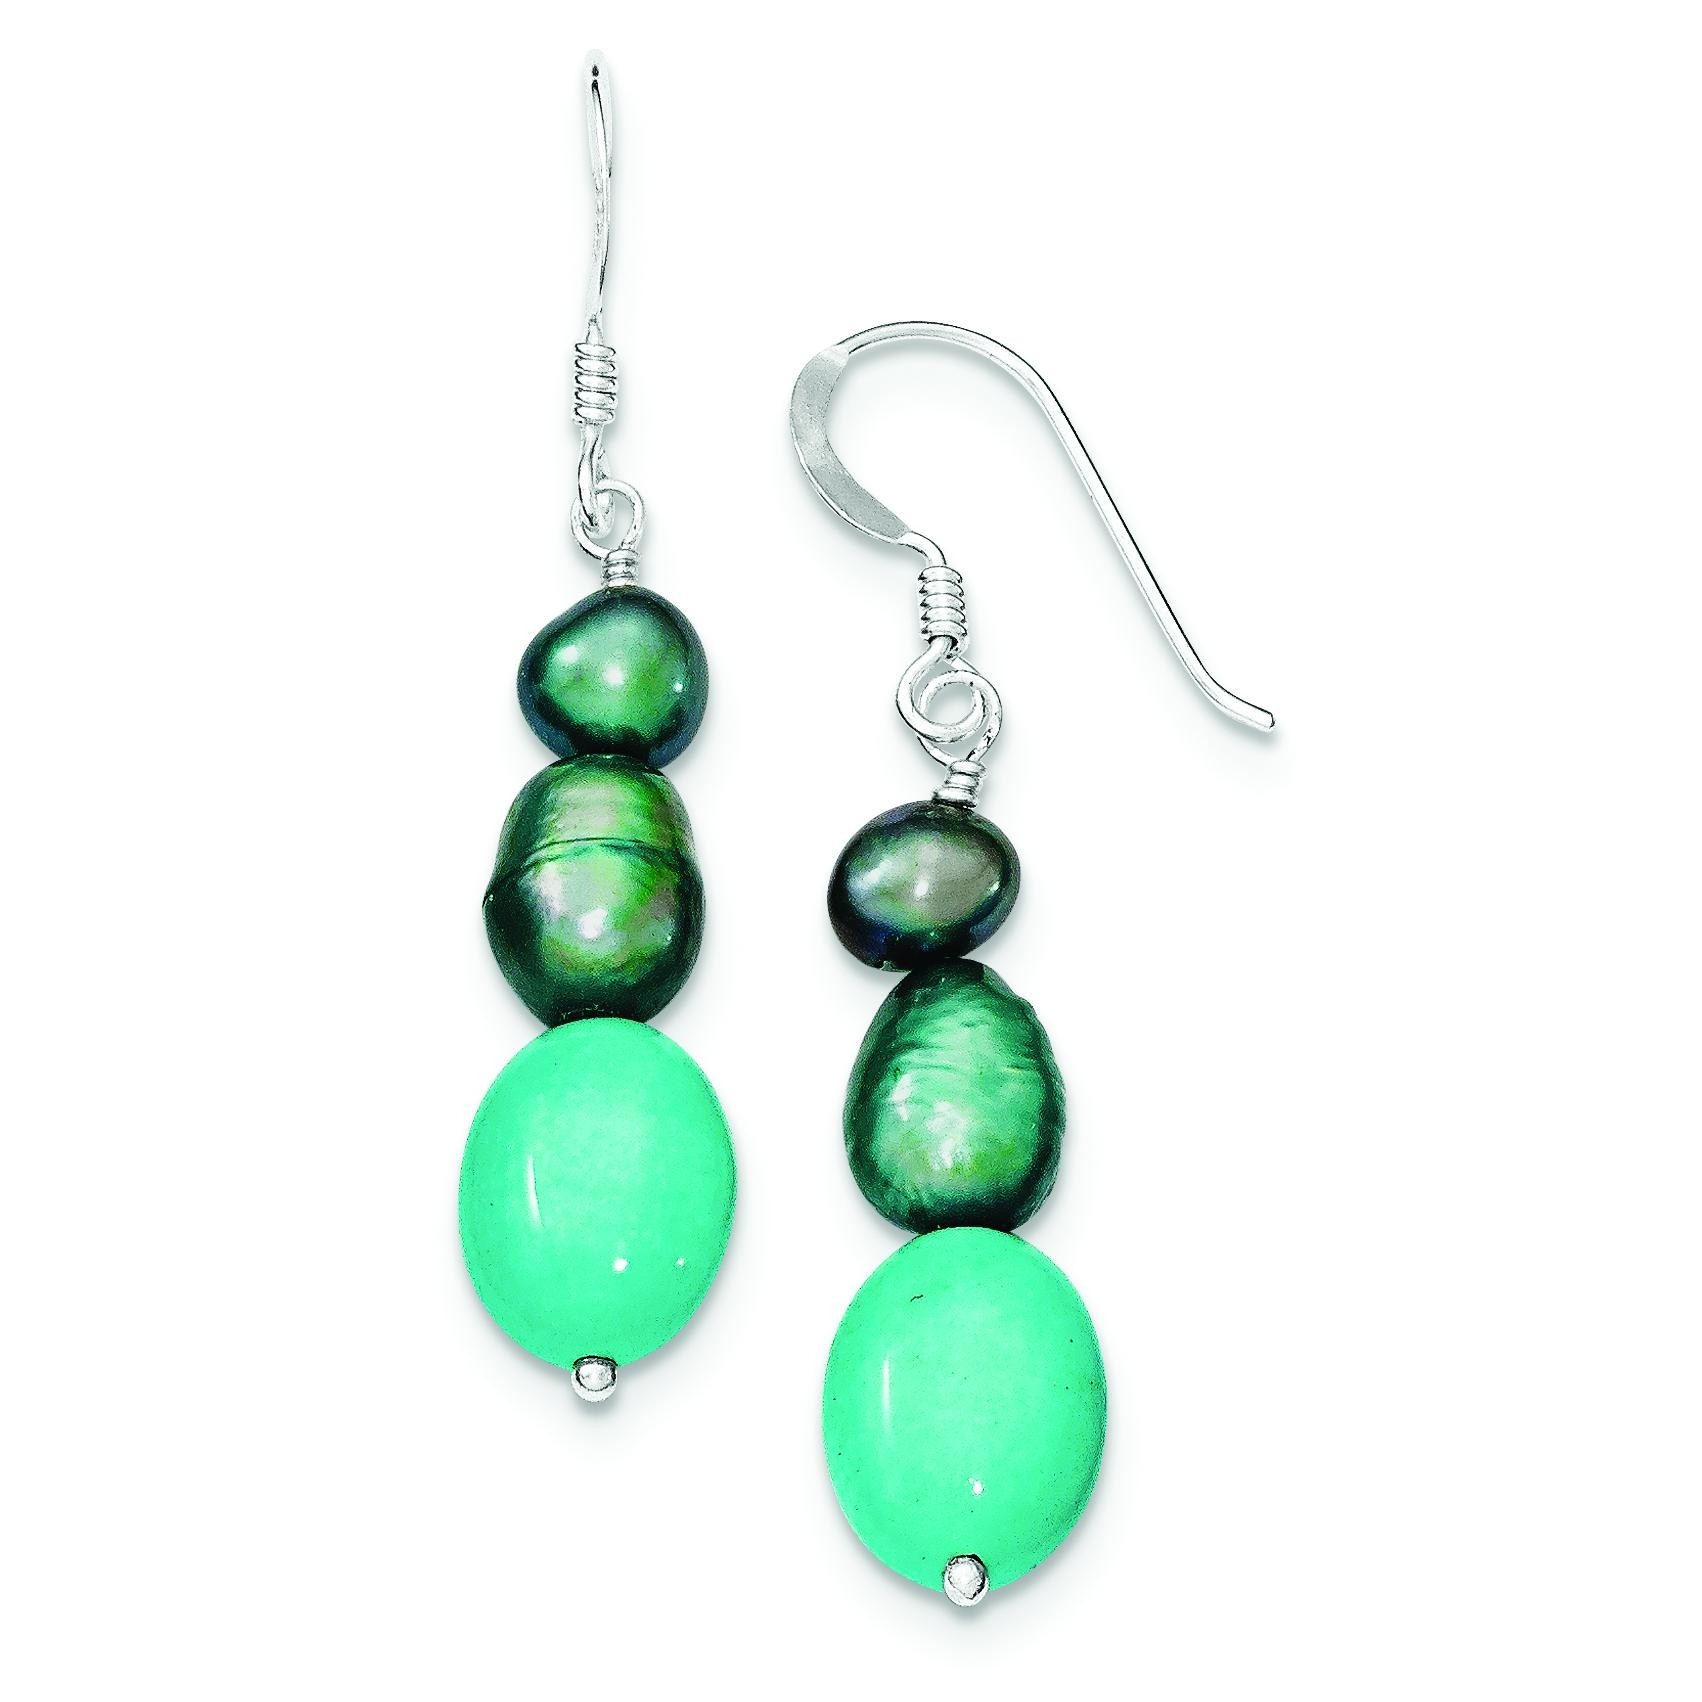 Green Turquoise Green Freshwater Cultured Pearl Earrings in Sterling Silver